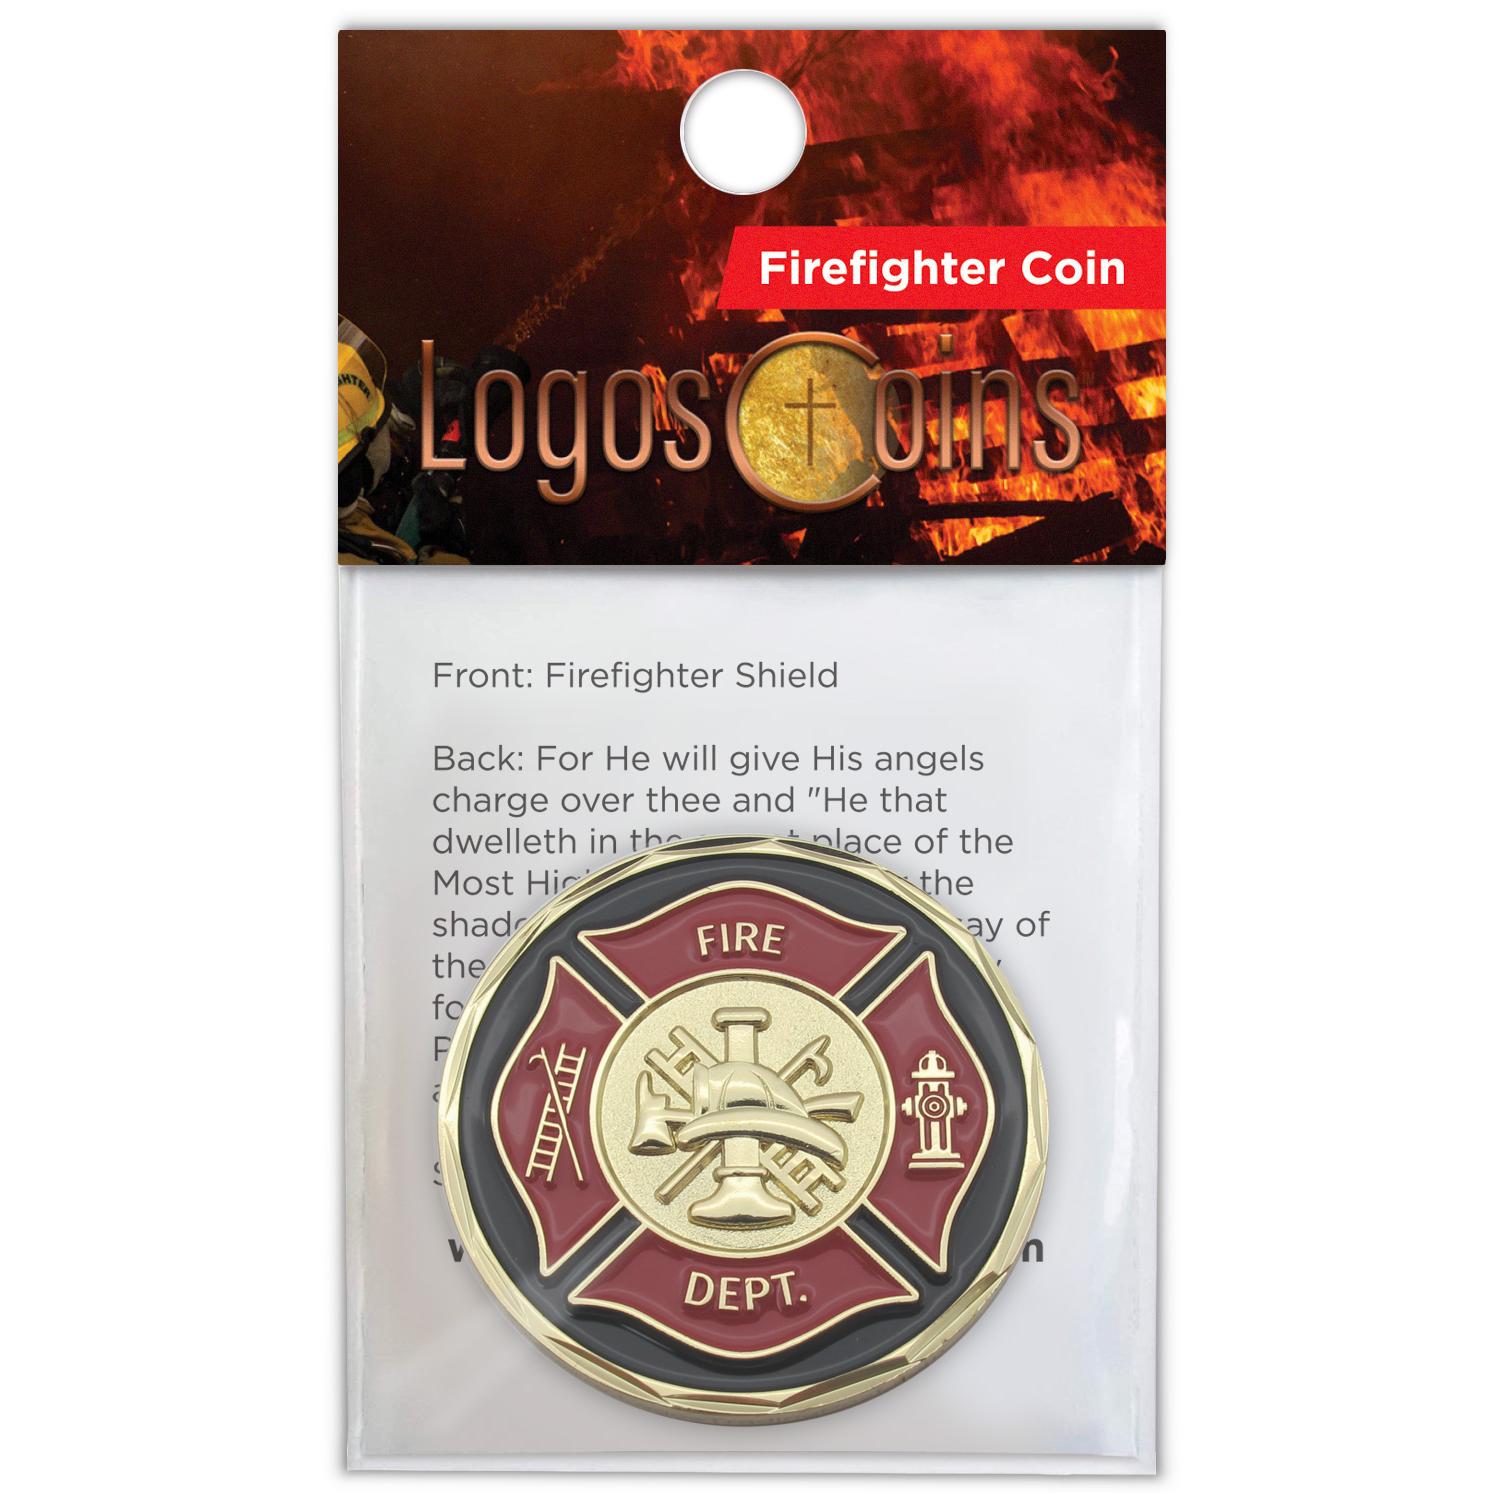 Front Firefighter Appreciation Gold Plated Challenge Coin in packaging